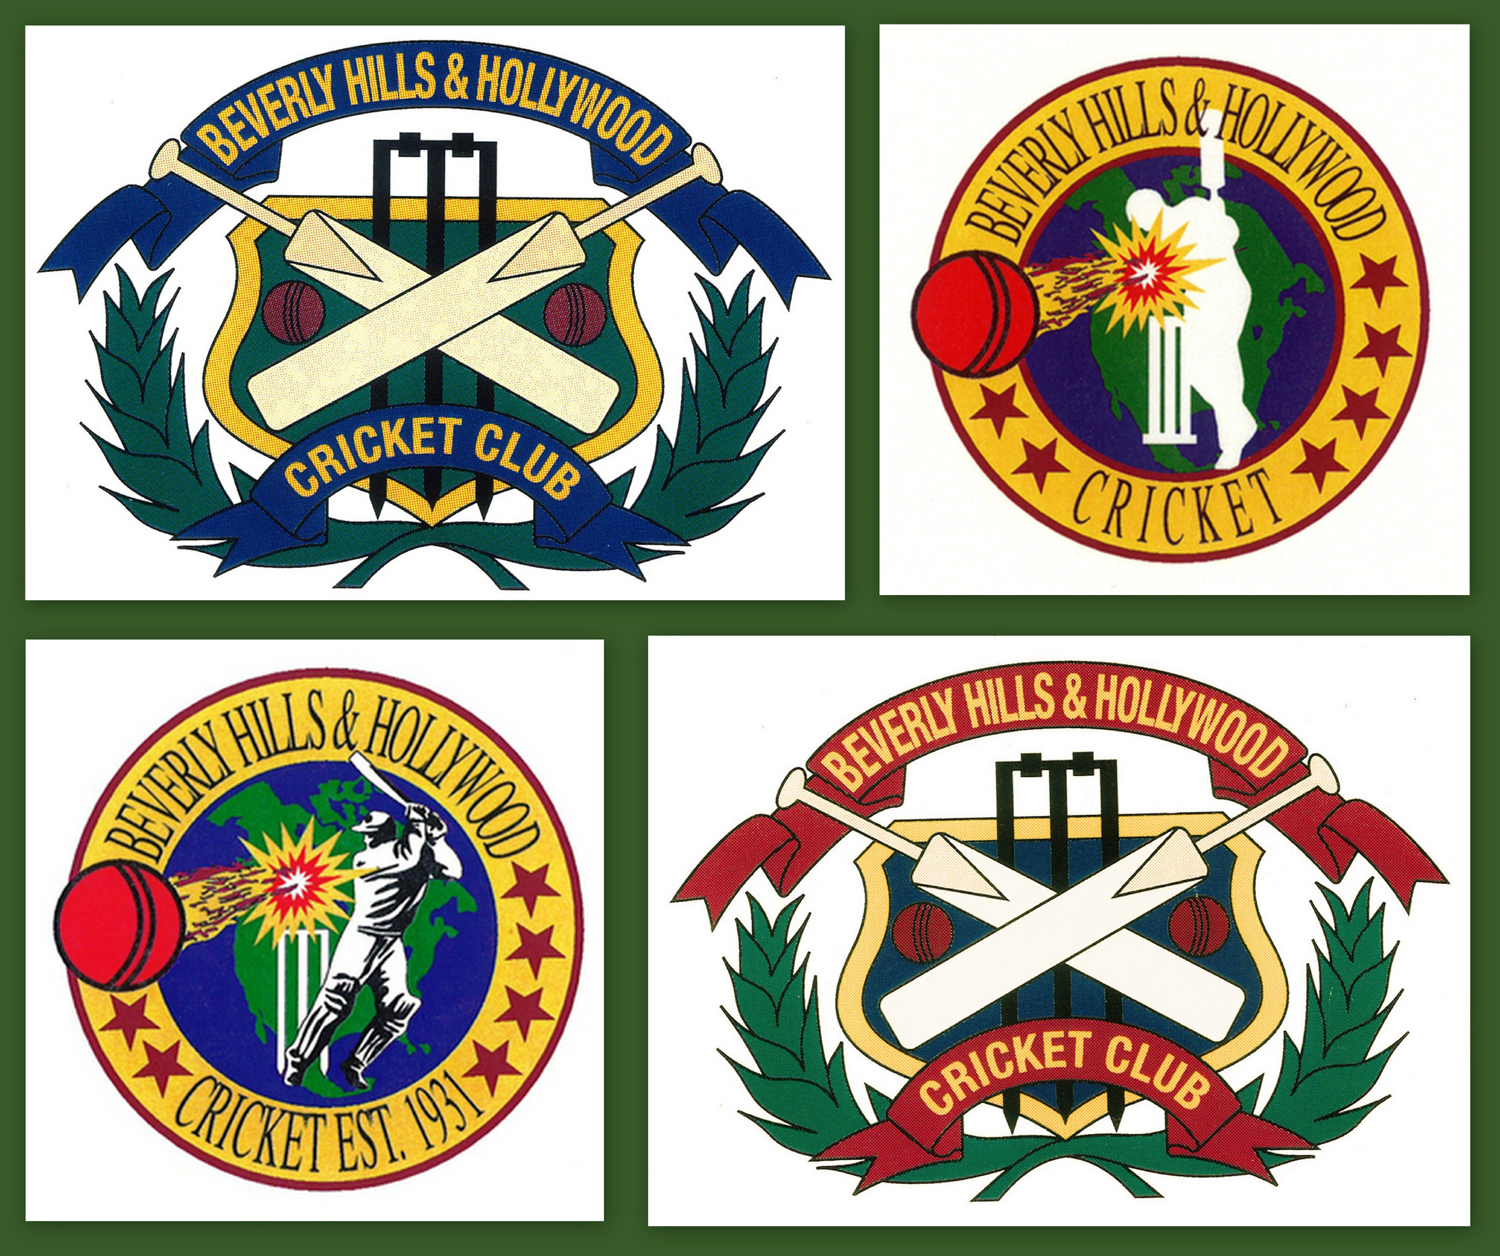 BHHCC Emblems.Collage.jpg